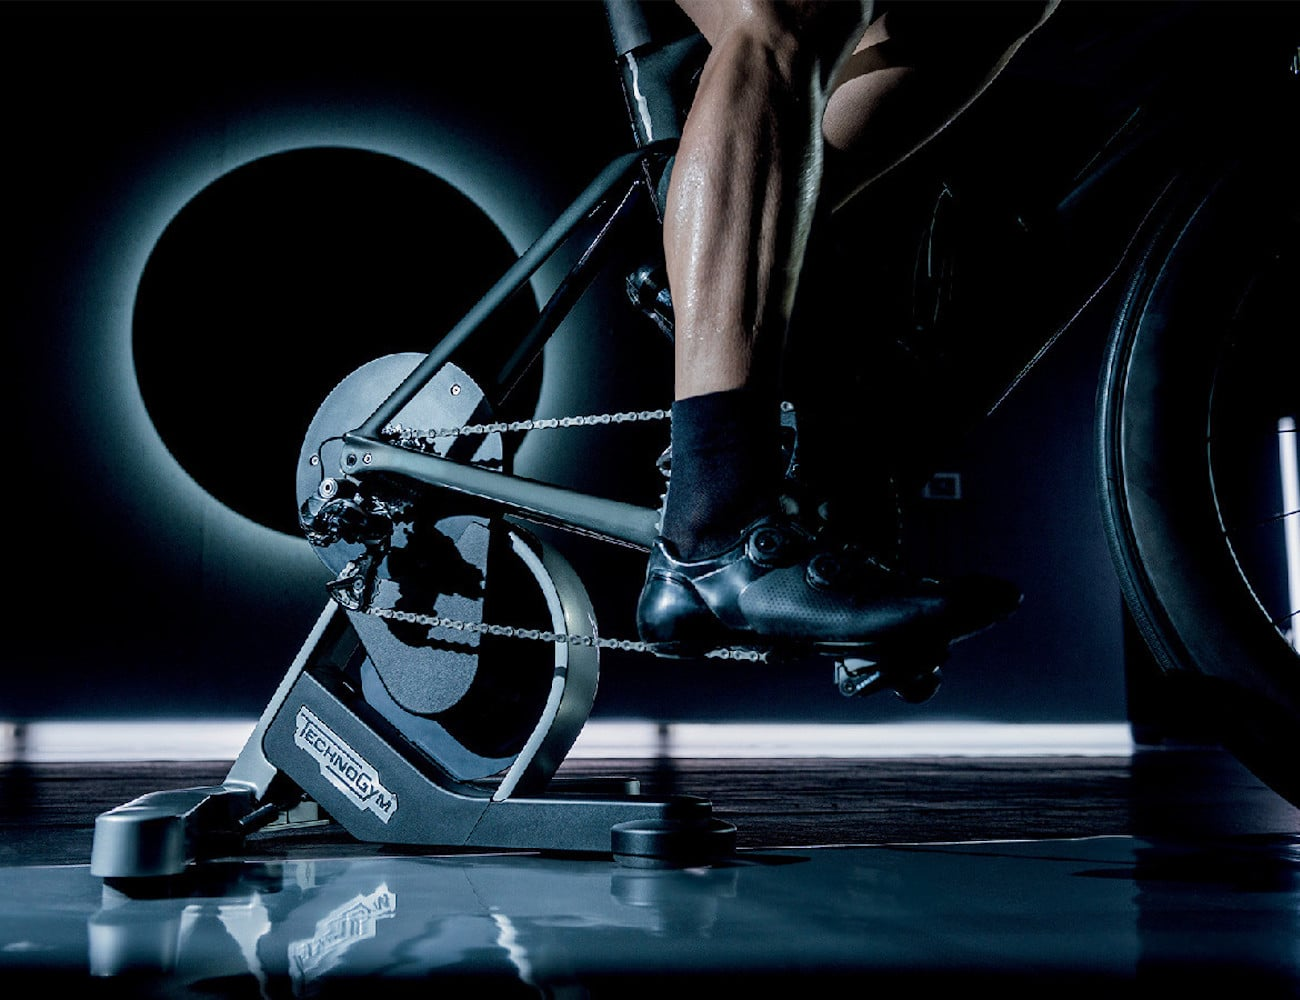 MYCYCLING Indoor Cycle Trainer